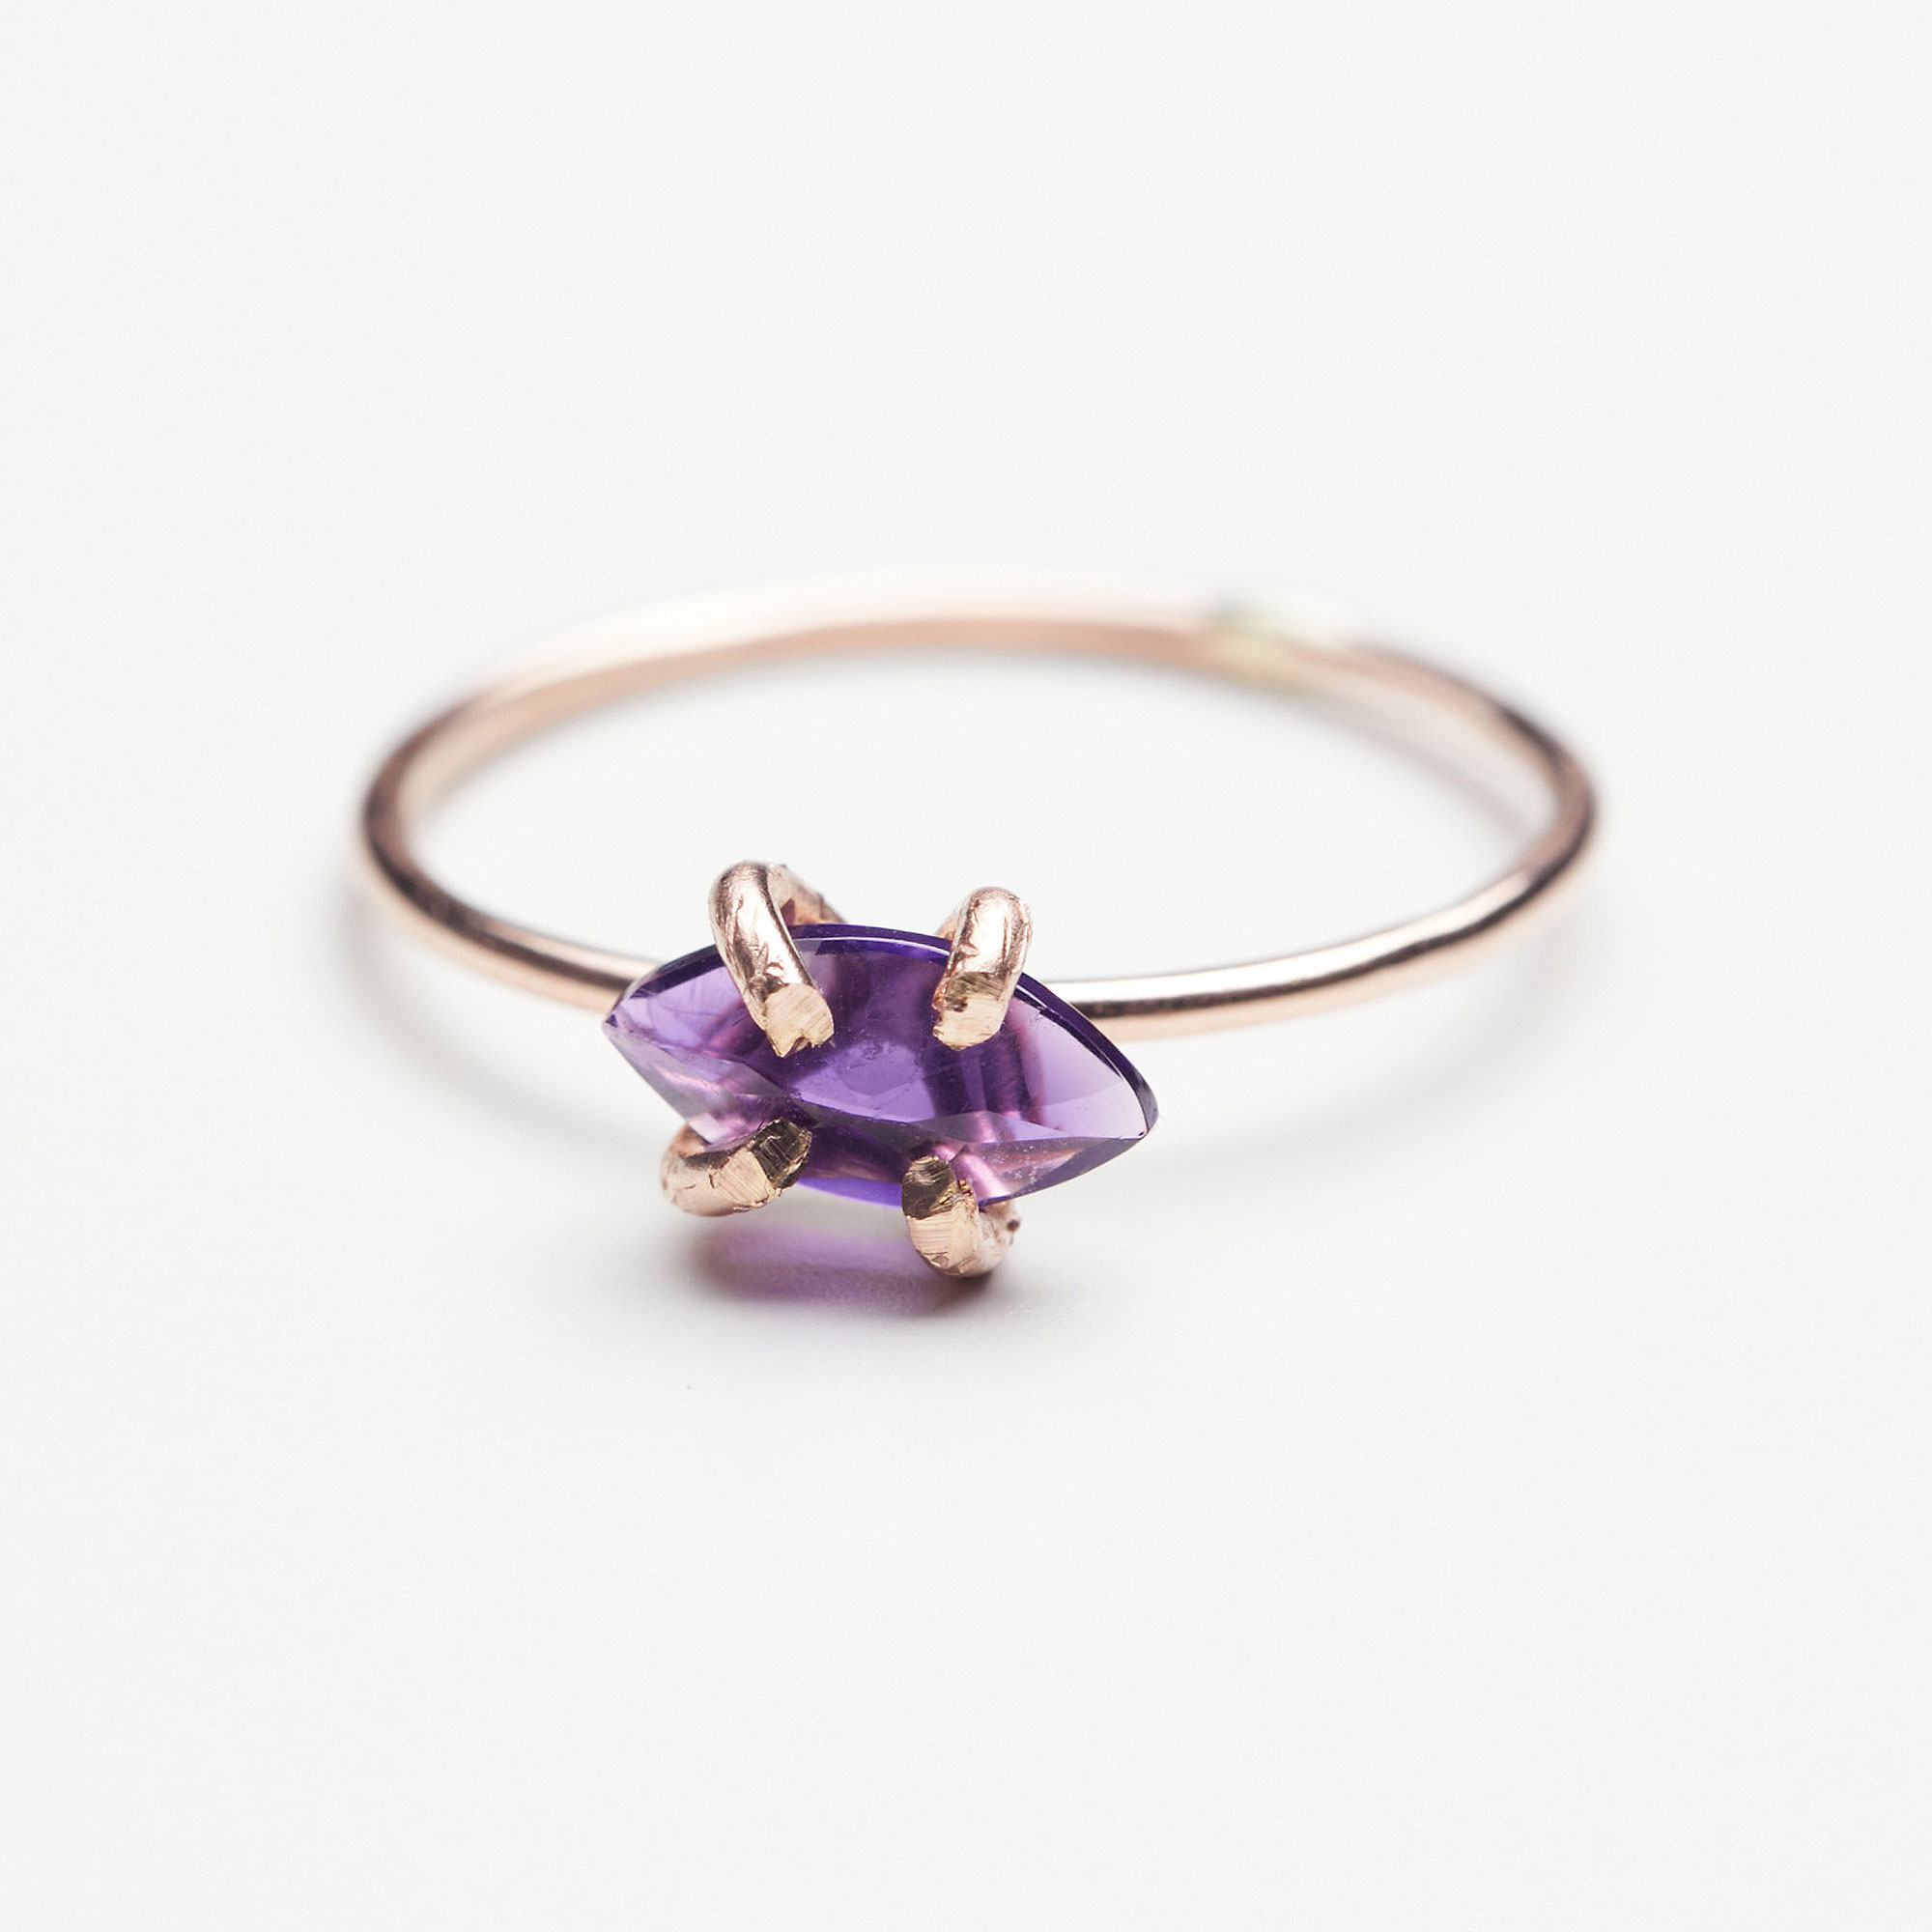 Mothers Day Personal Jewelry GalleryFree People ringCourtesy Free People